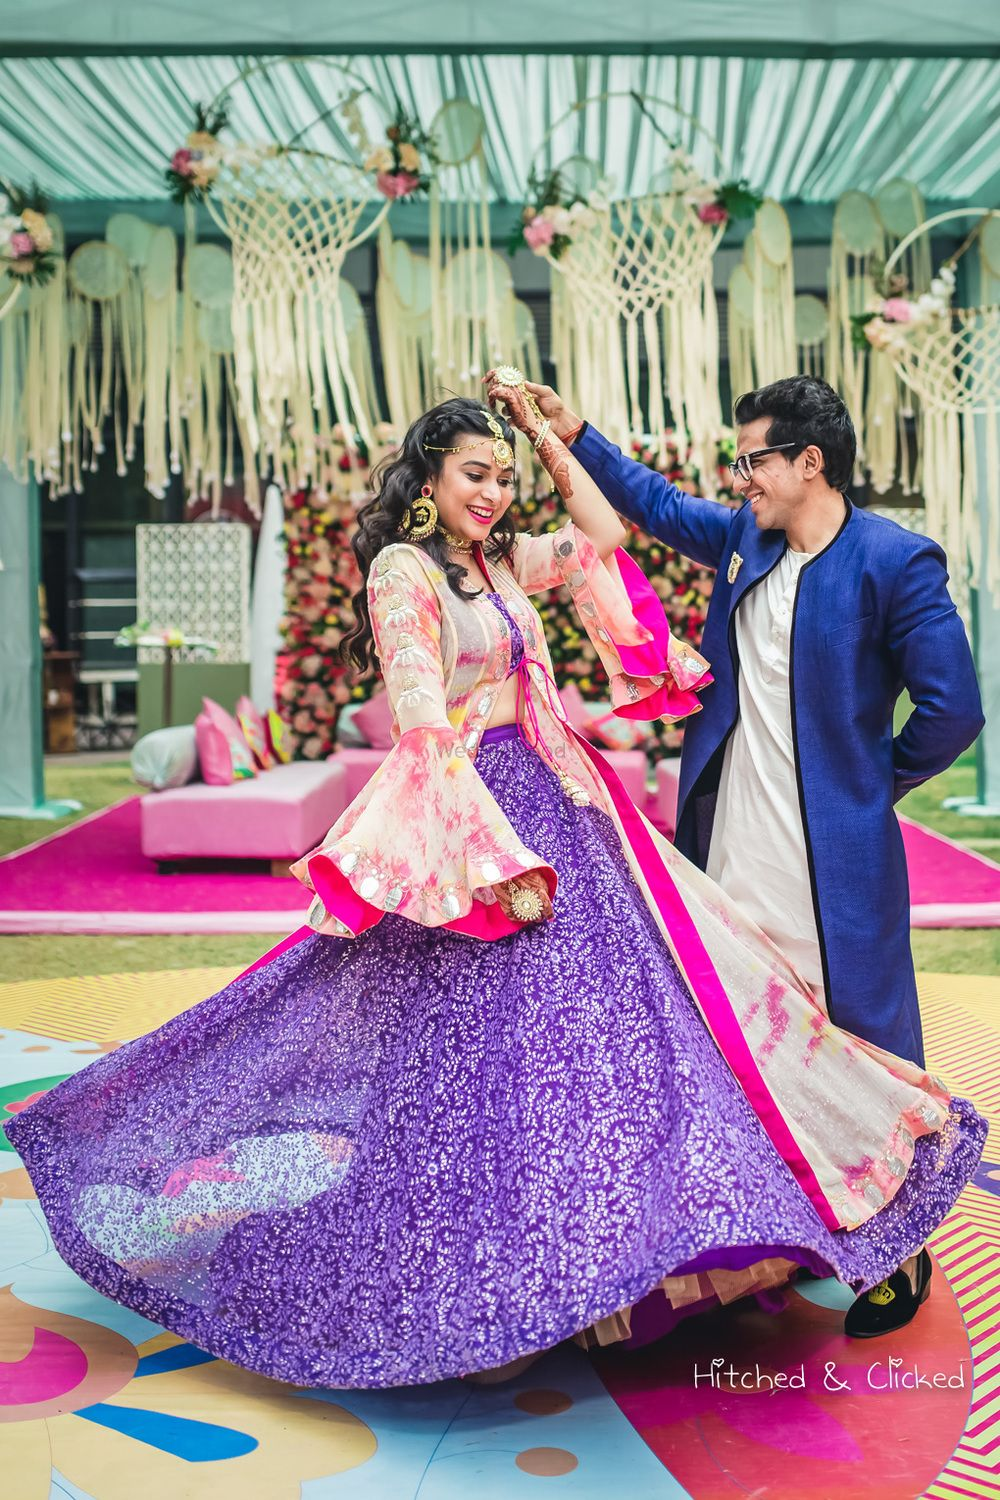 Photo of Purple lehenga for engagement with bride twirling